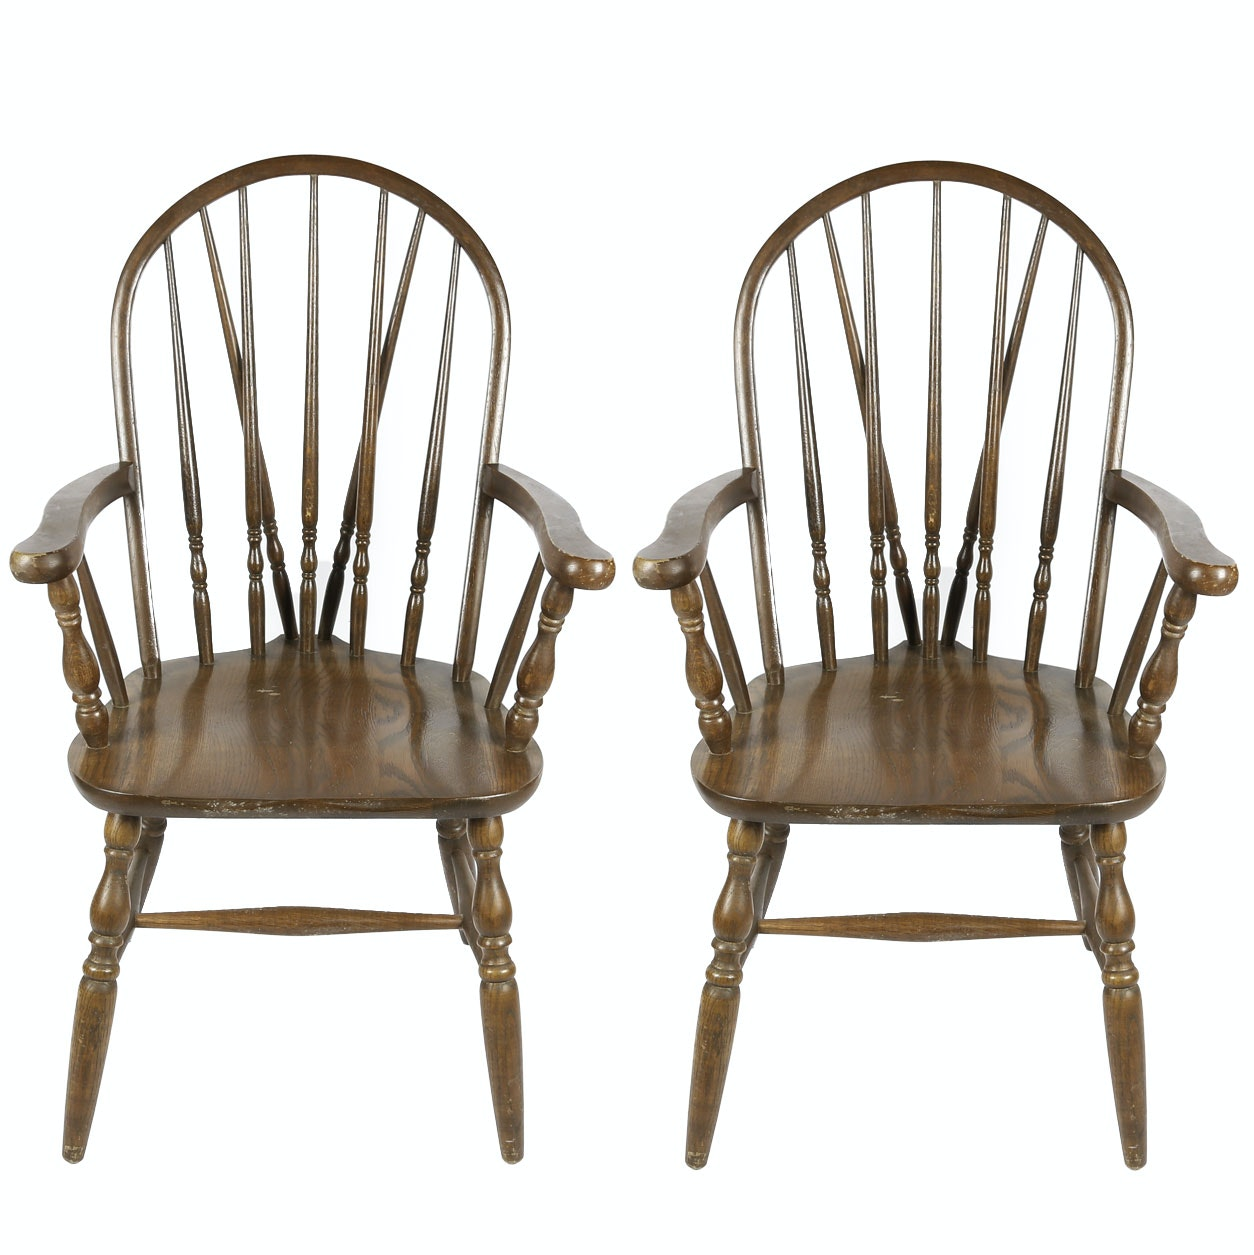 Vintage Bow Back Windsor Chairs by Whitewood Trading Co.